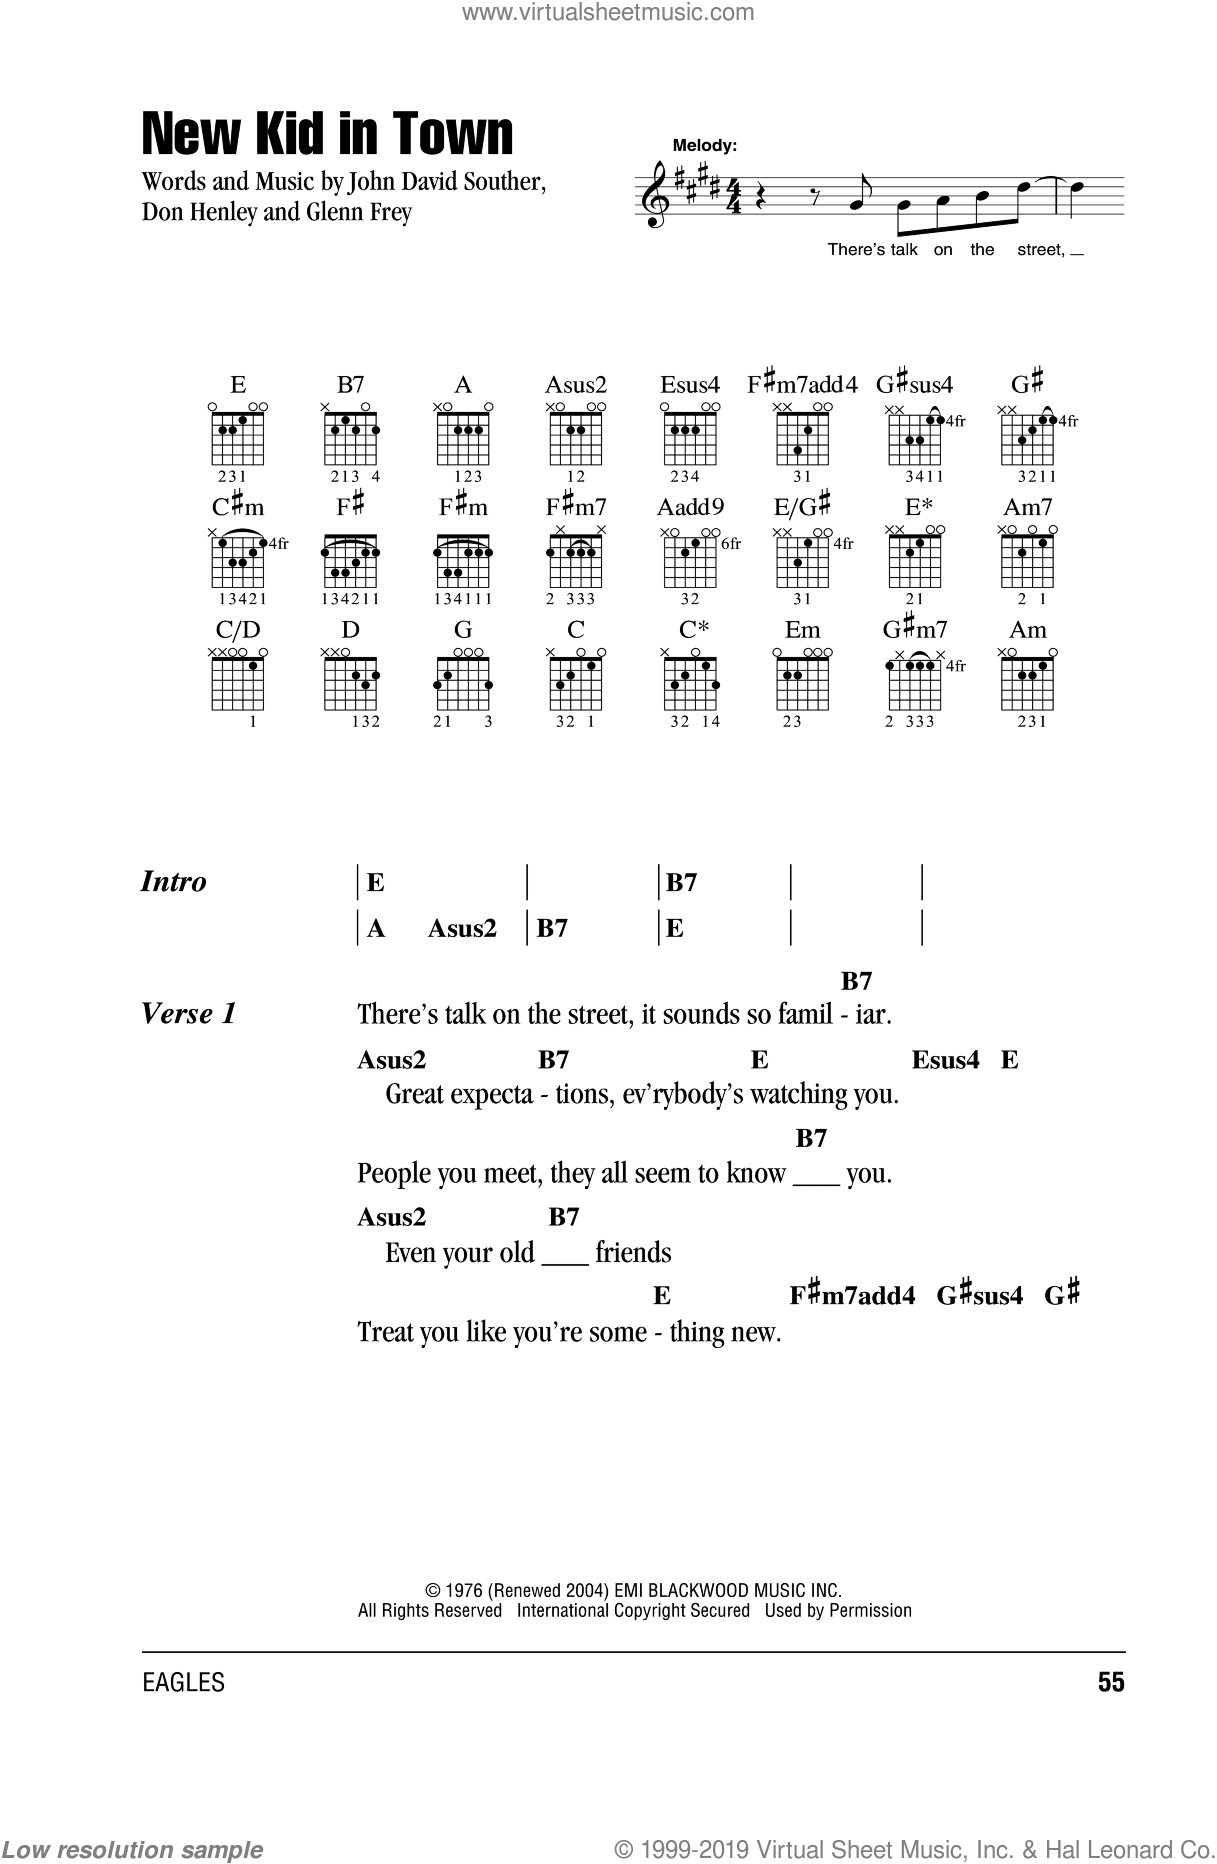 New Kid In Town sheet music for guitar (chords) by John David Souther